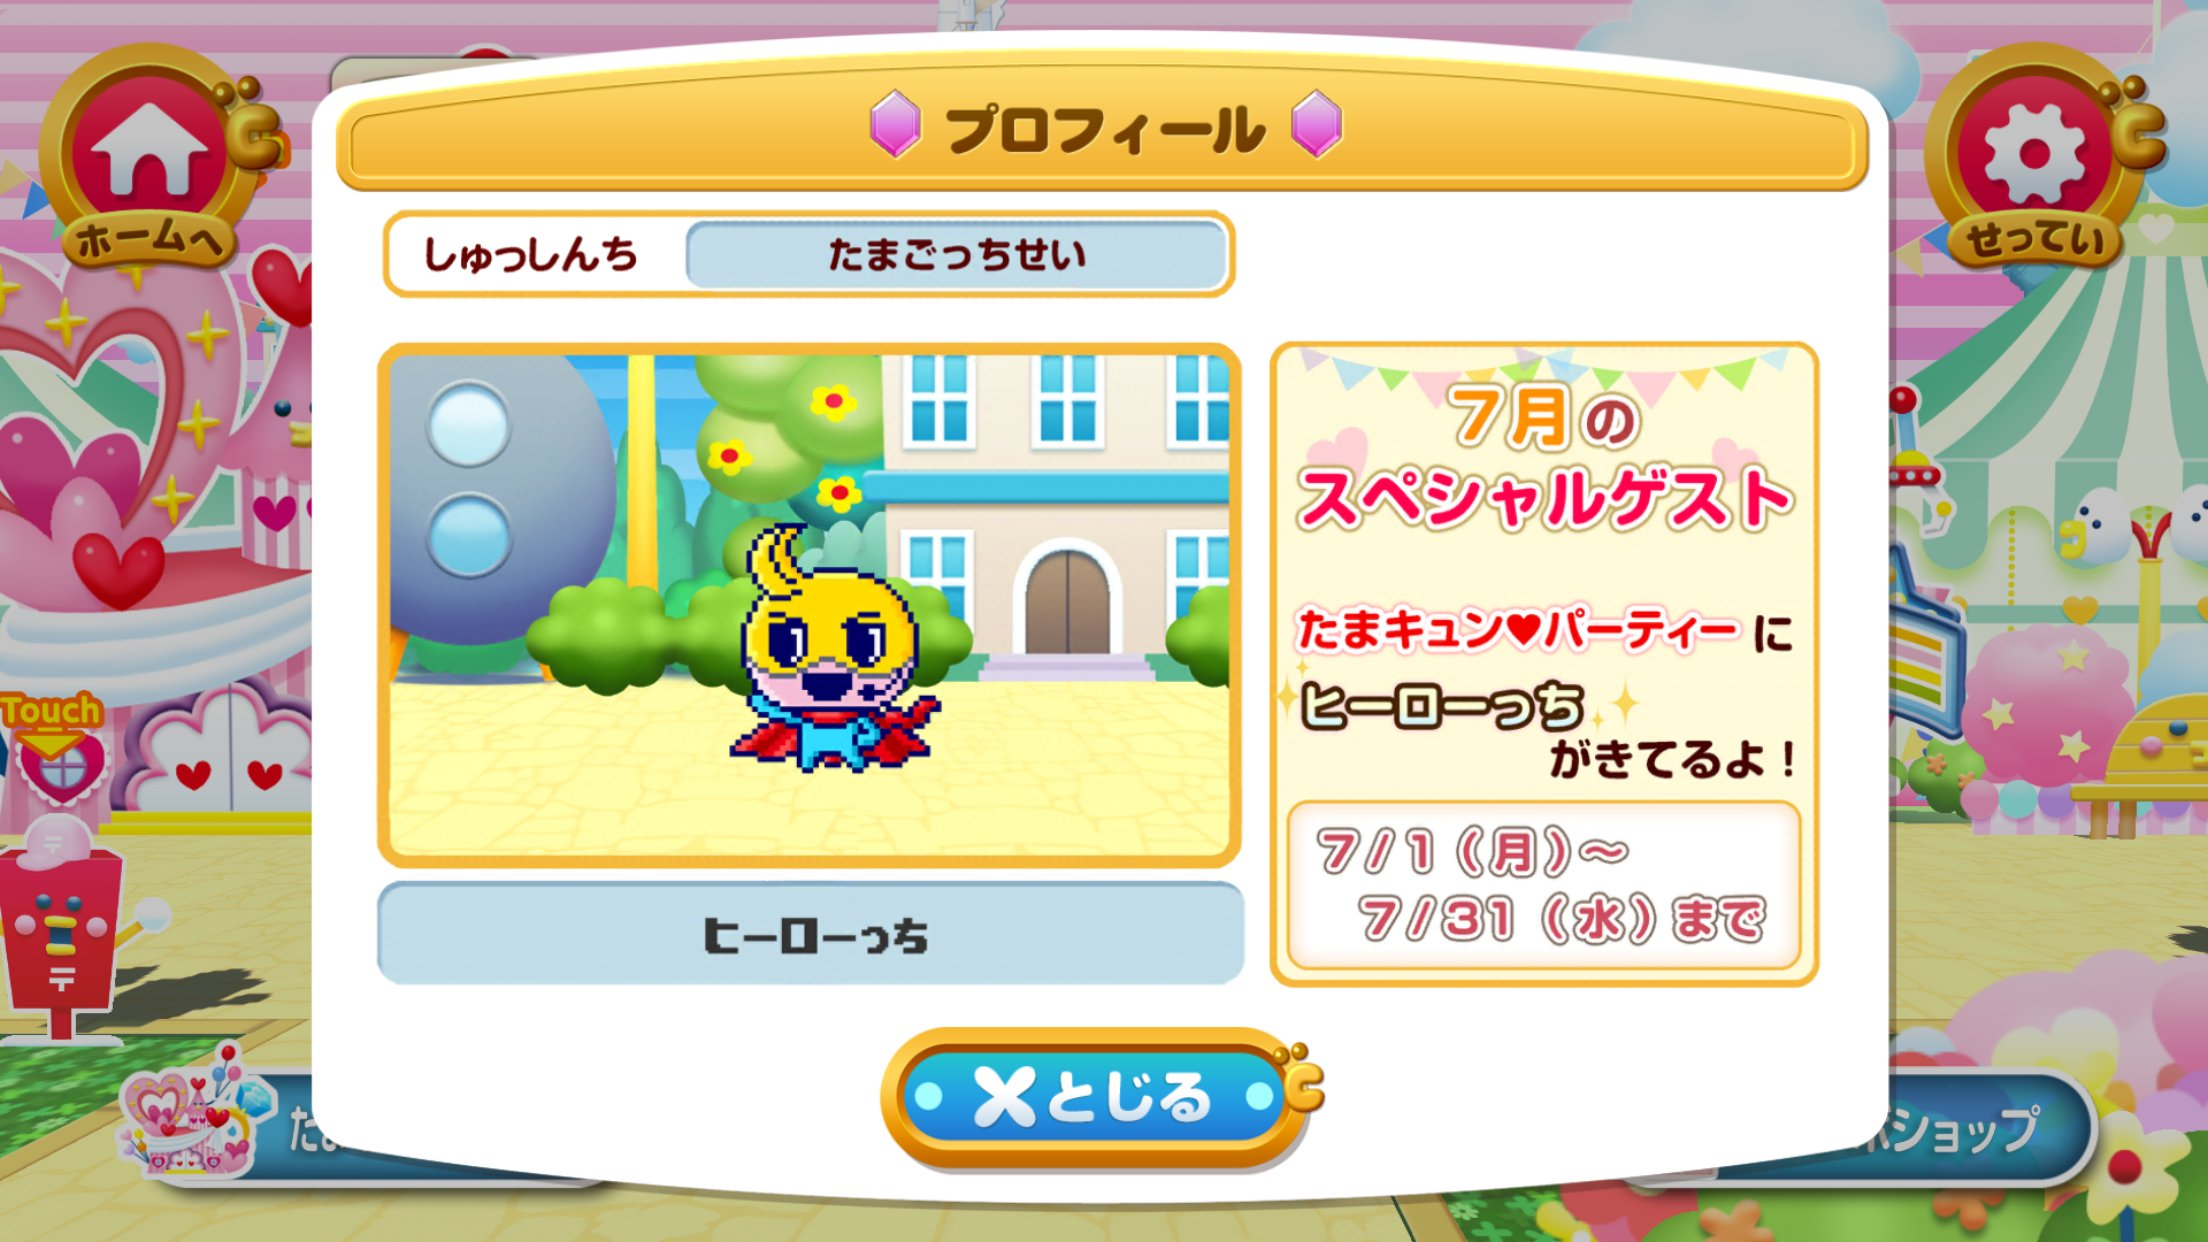 Herotchi arrives in the Meets App